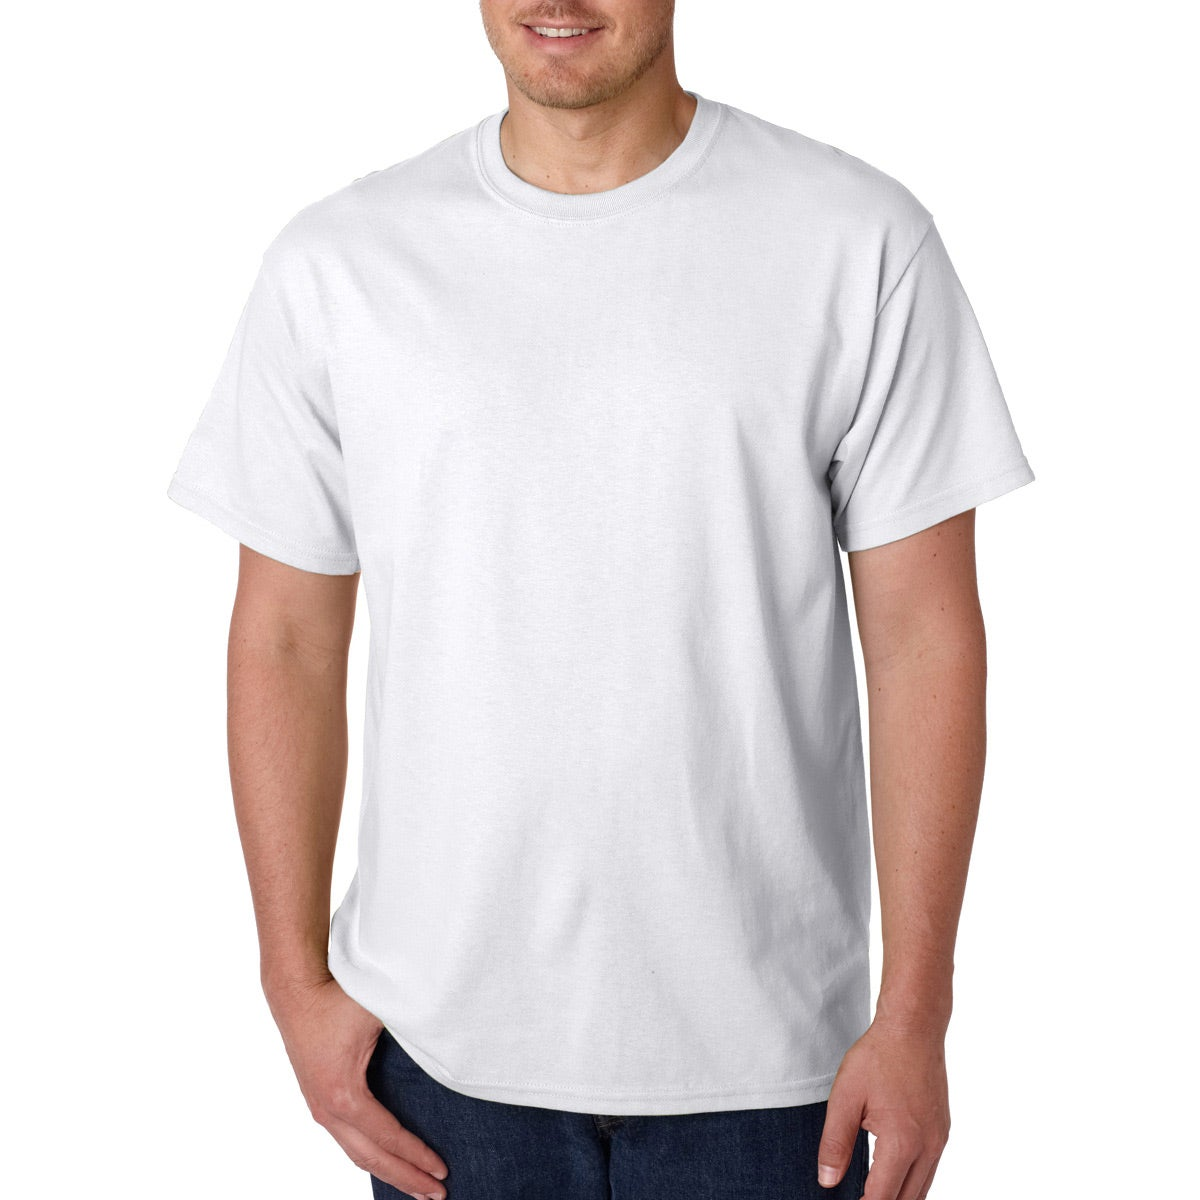 Gildan adult heavy cotton t shirt white 100 cotton t for Gildan t shirts online